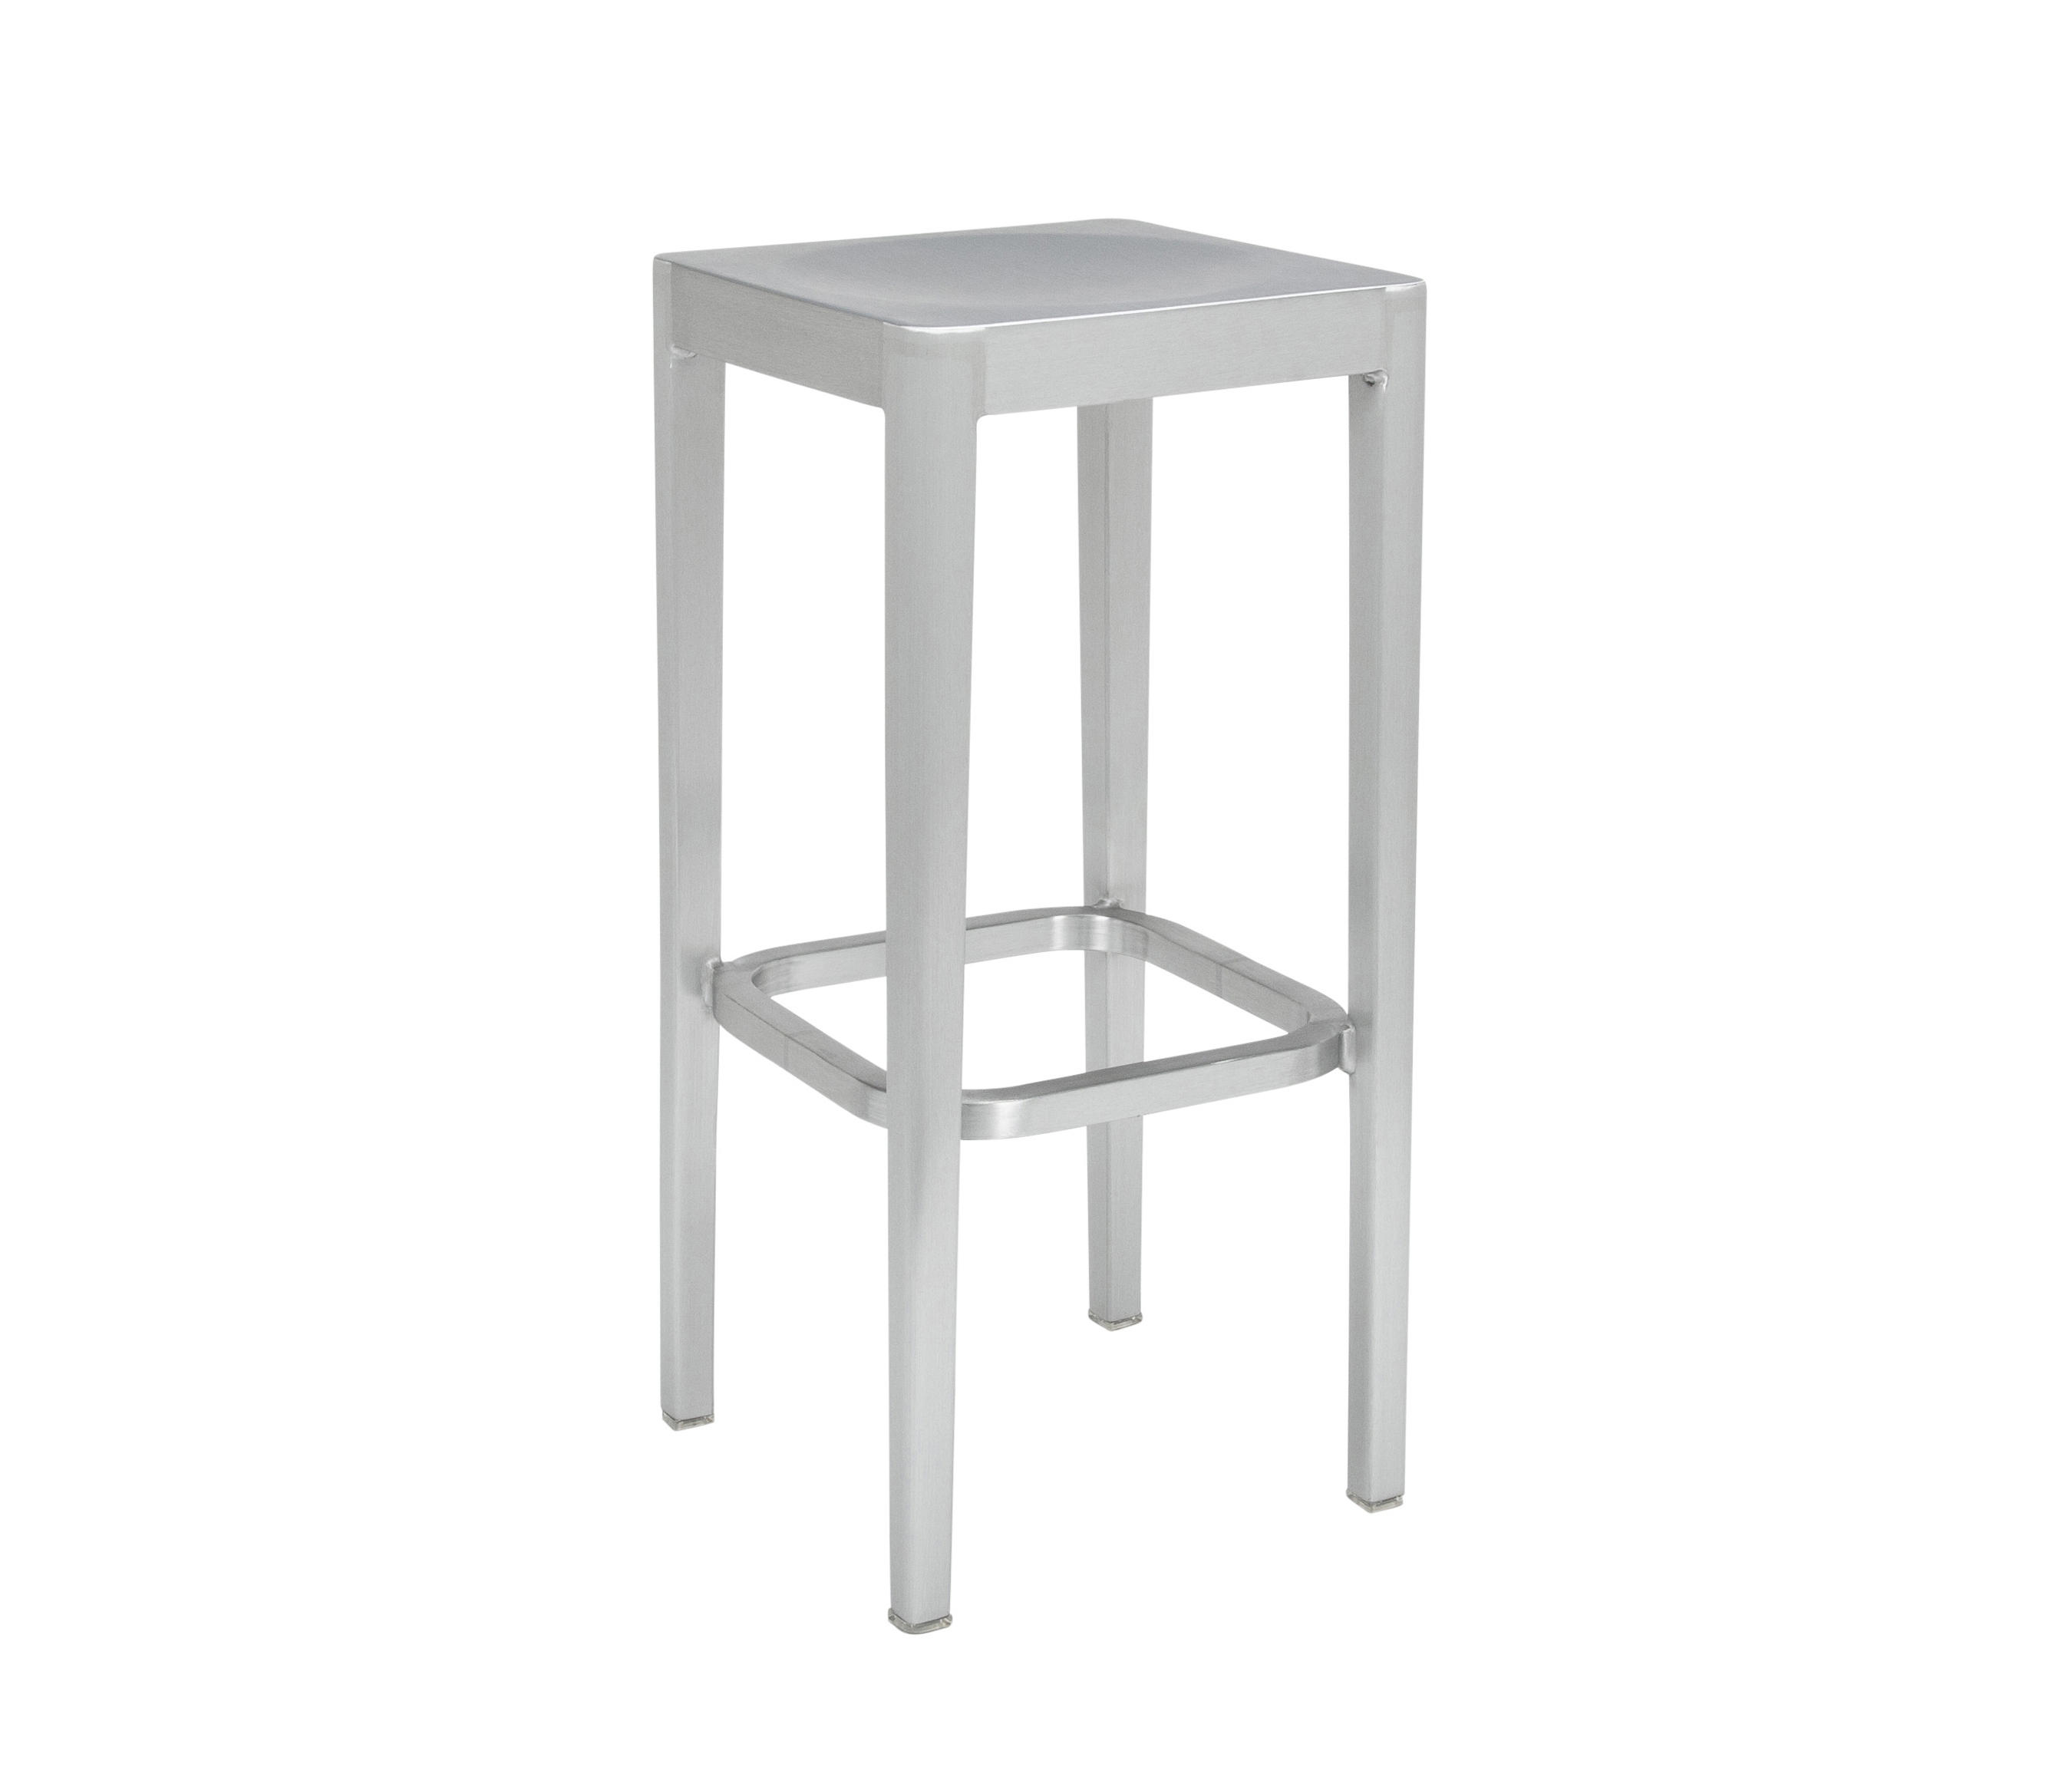 emeco barstool  bar stools from emeco  architonic - emeco barstool by emeco  bar stools